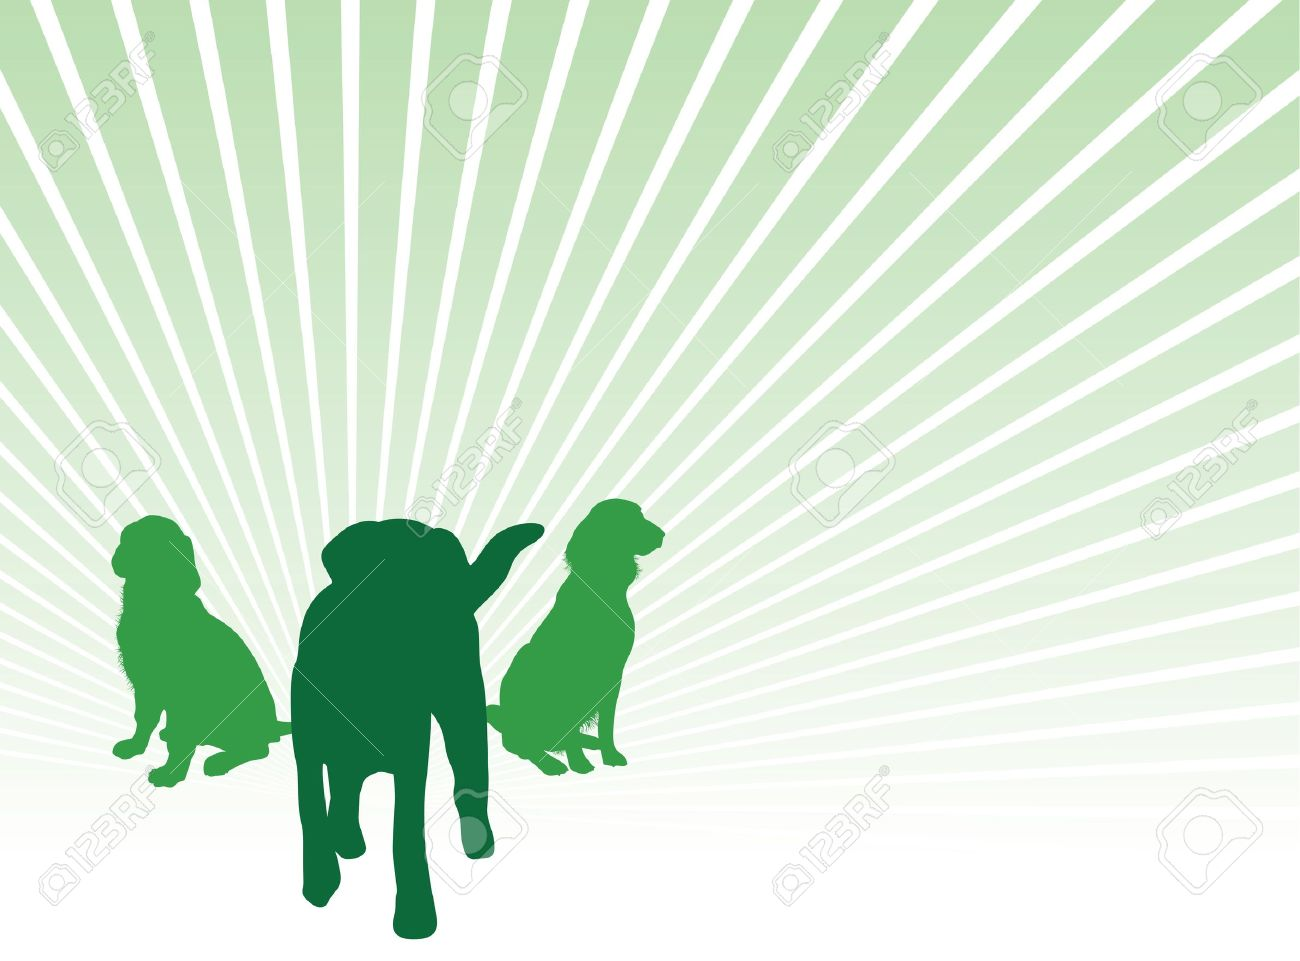 Dog silhouette background royalty free cliparts vectors and stock dog silhouette background voltagebd Gallery